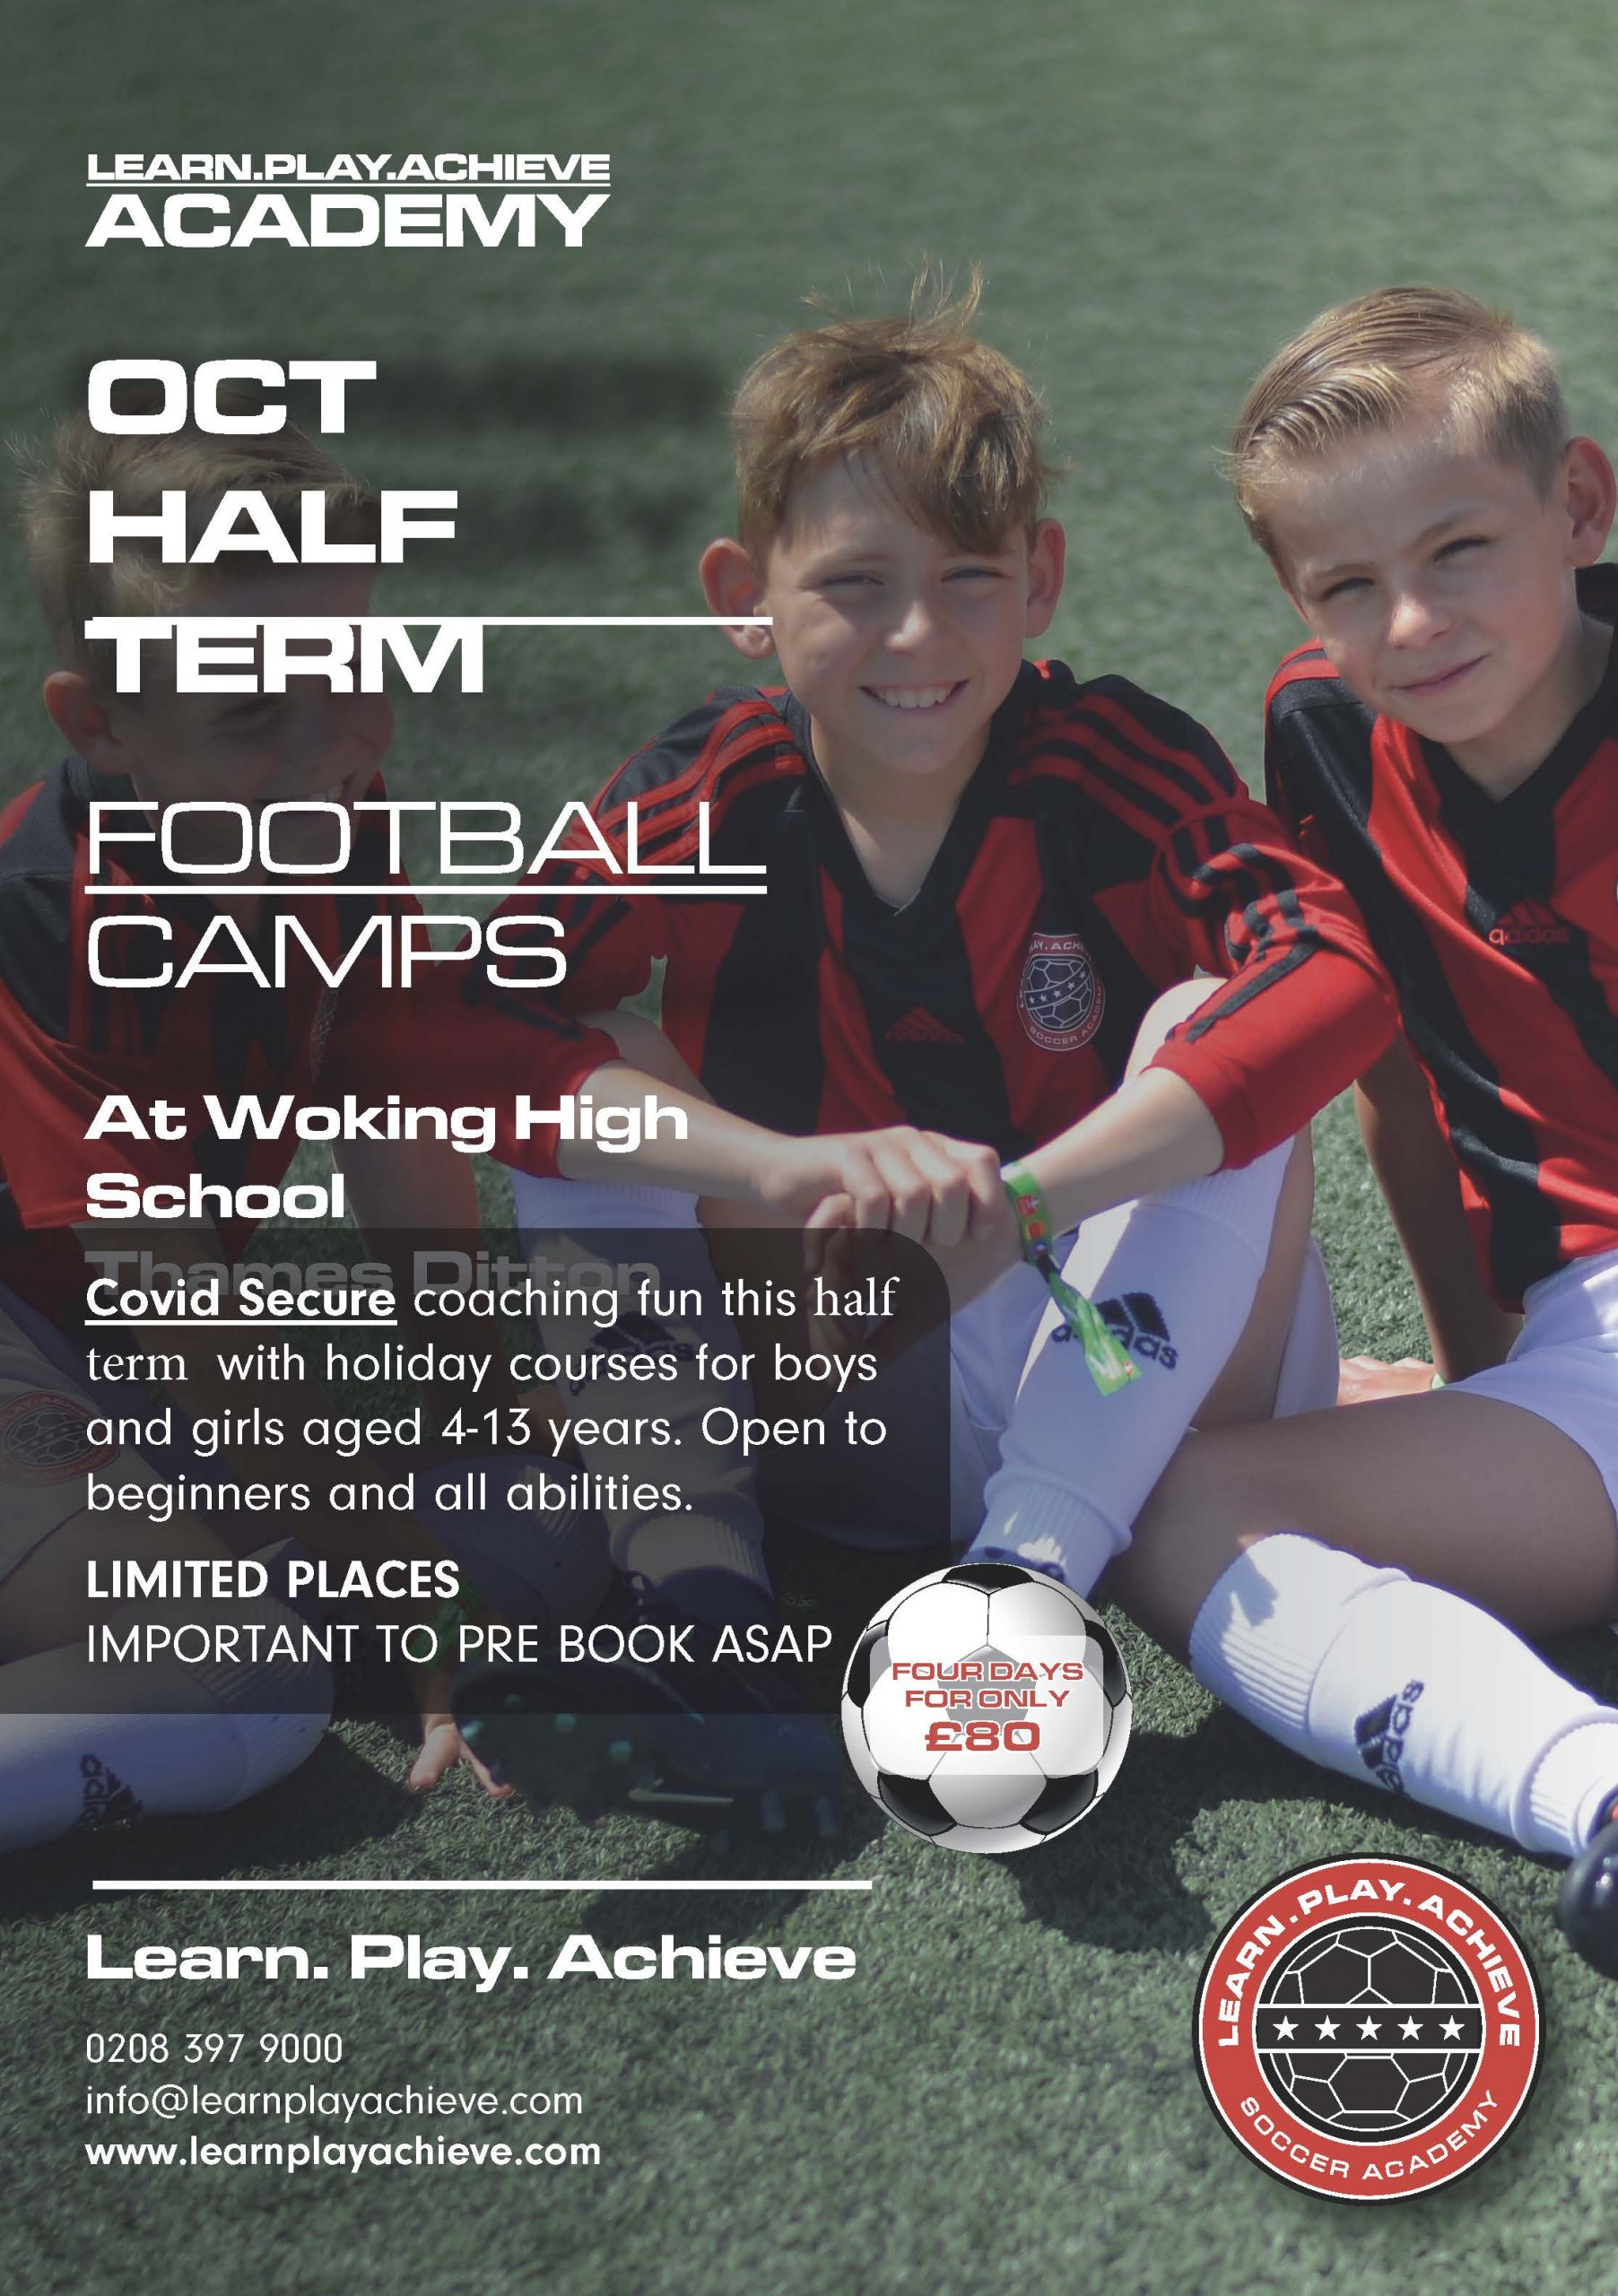 https://www.learnplayachieve.com/wp-content/uploads/2020/10/Woking-High-School-Oct-Half-Term-Holiday-Camp_Page_1-scaled.jpg